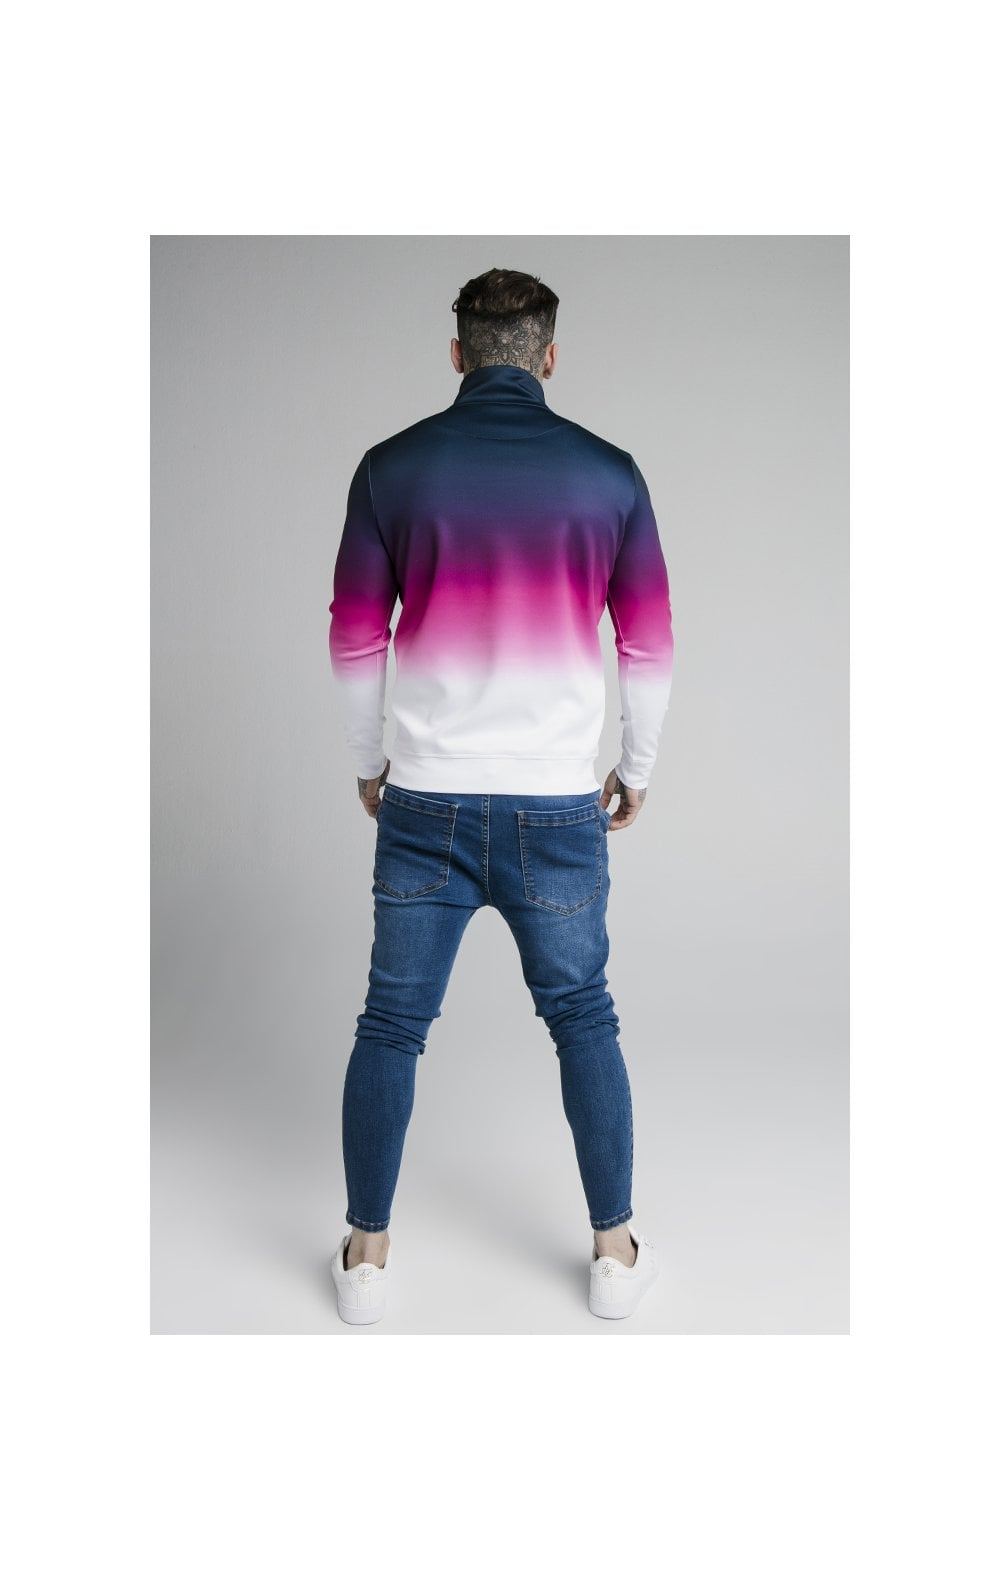 SikSilk Quarter Zip Overhead Track Top - Navy, Pink & White (4)